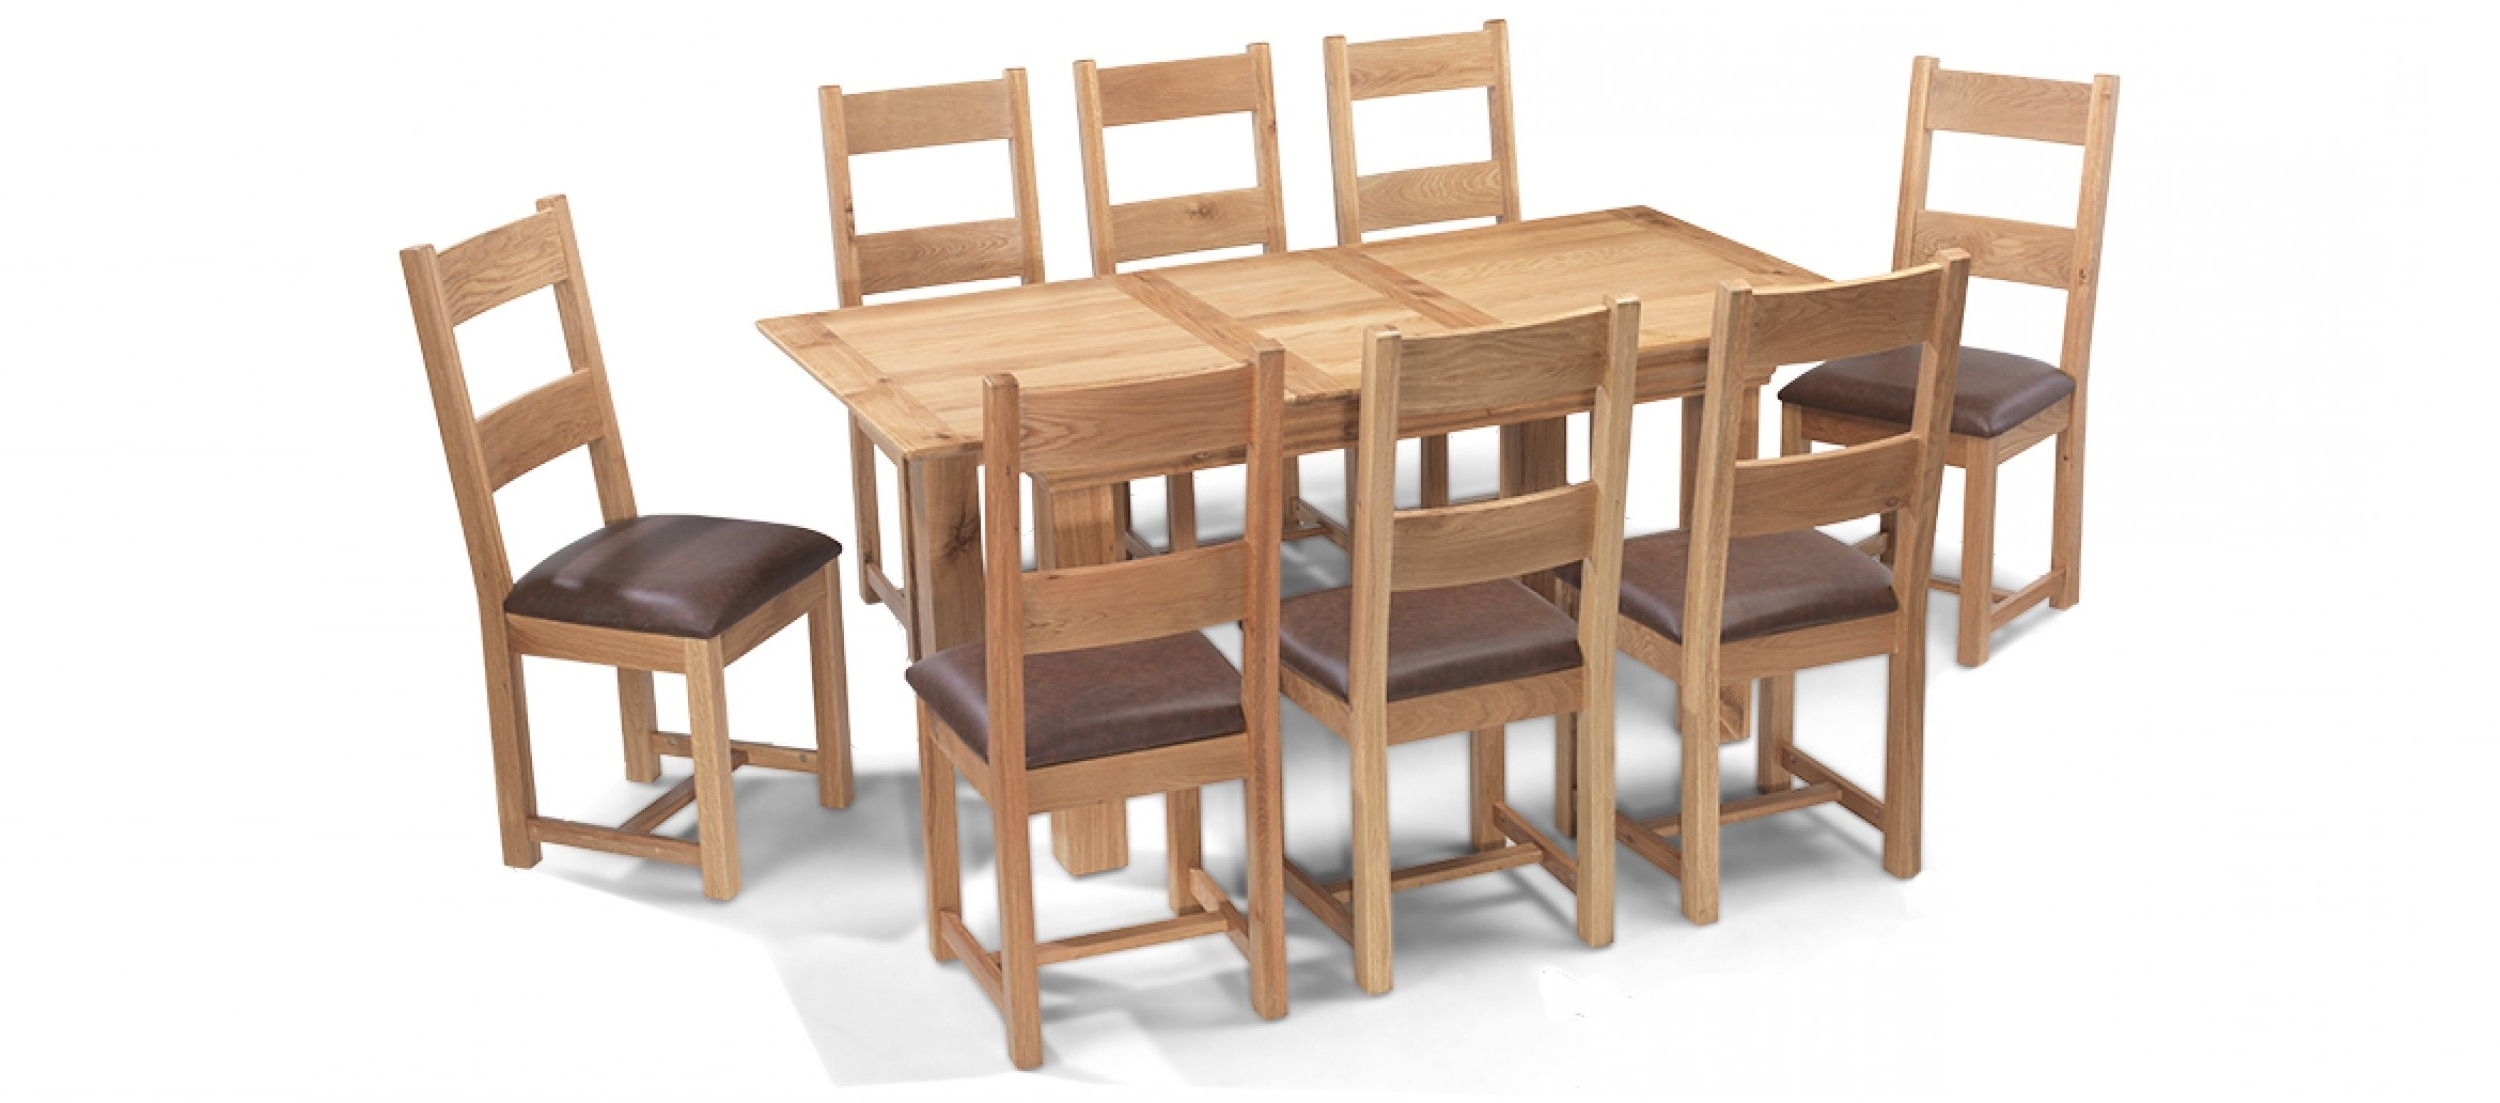 Oak Dining Tables And 8 Chairs Within Most Recently Released Constance Oak 140 180 Cm Extending Dining Table And 8 Chairs (View 18 of 25)